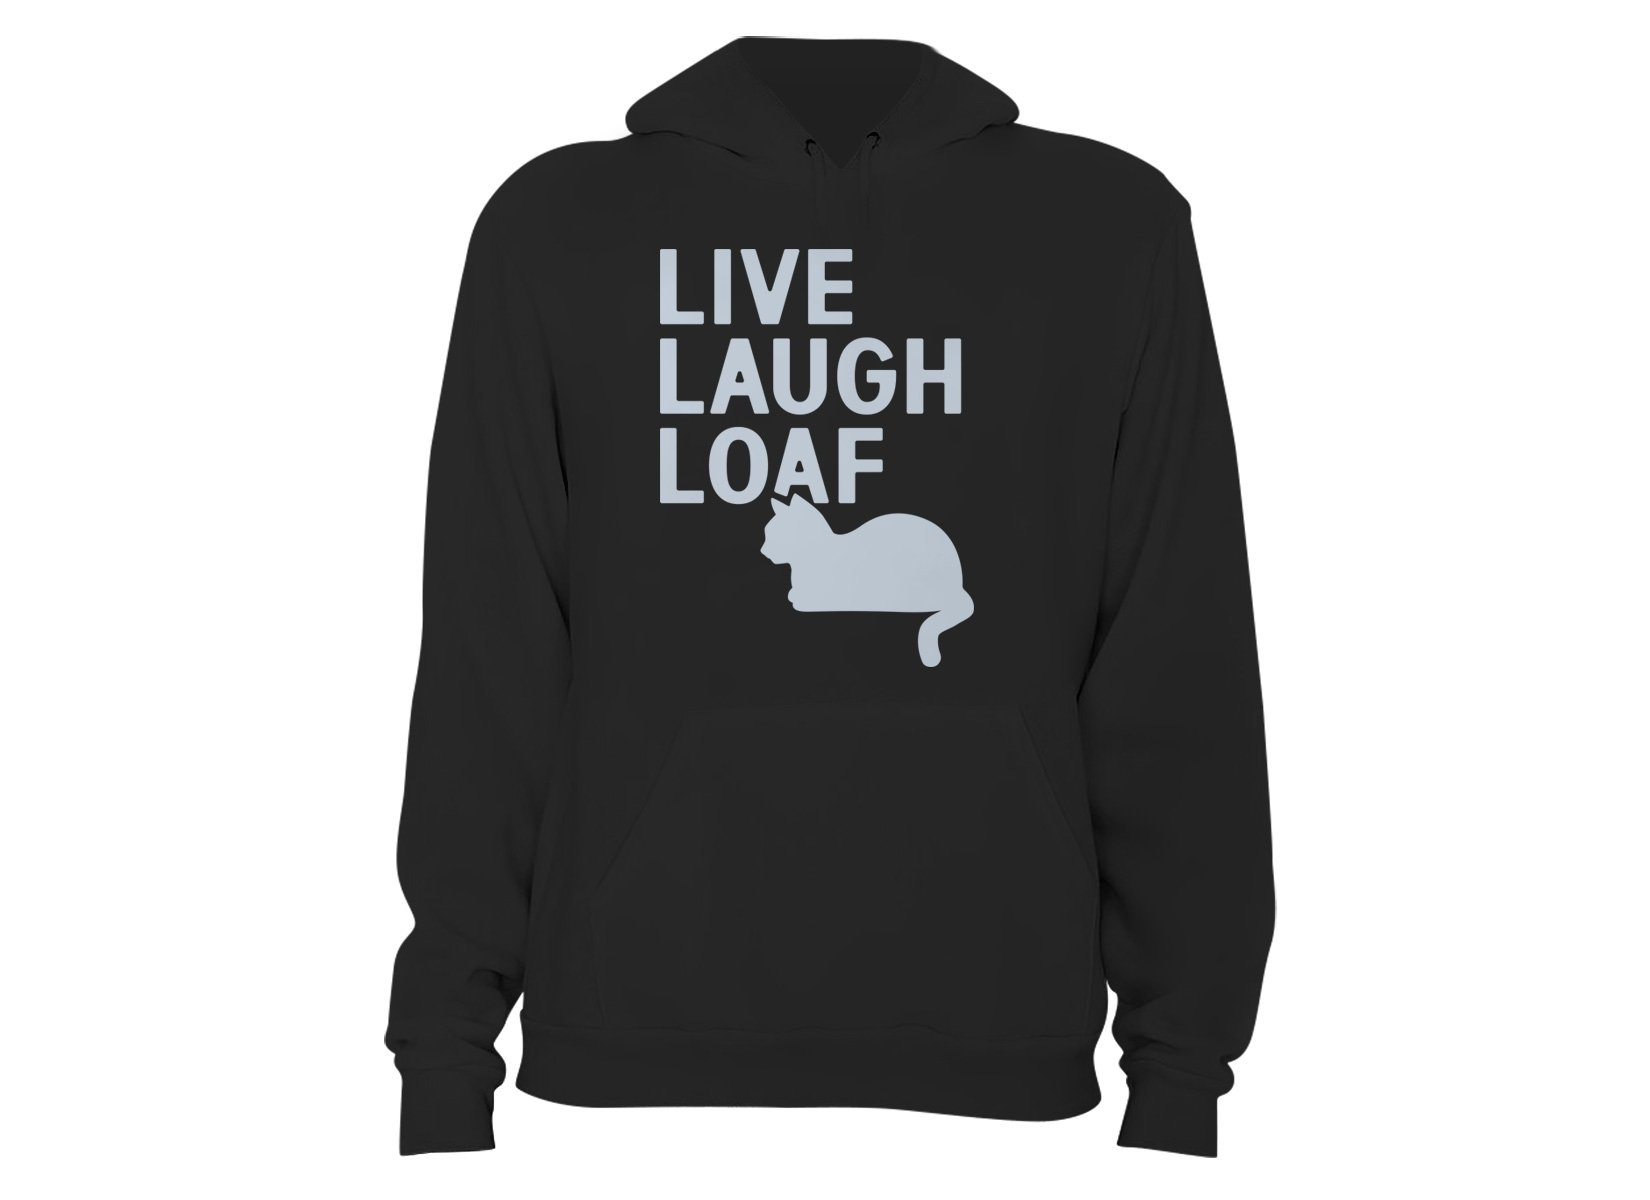 Live Laugh Loaf on Hoodie